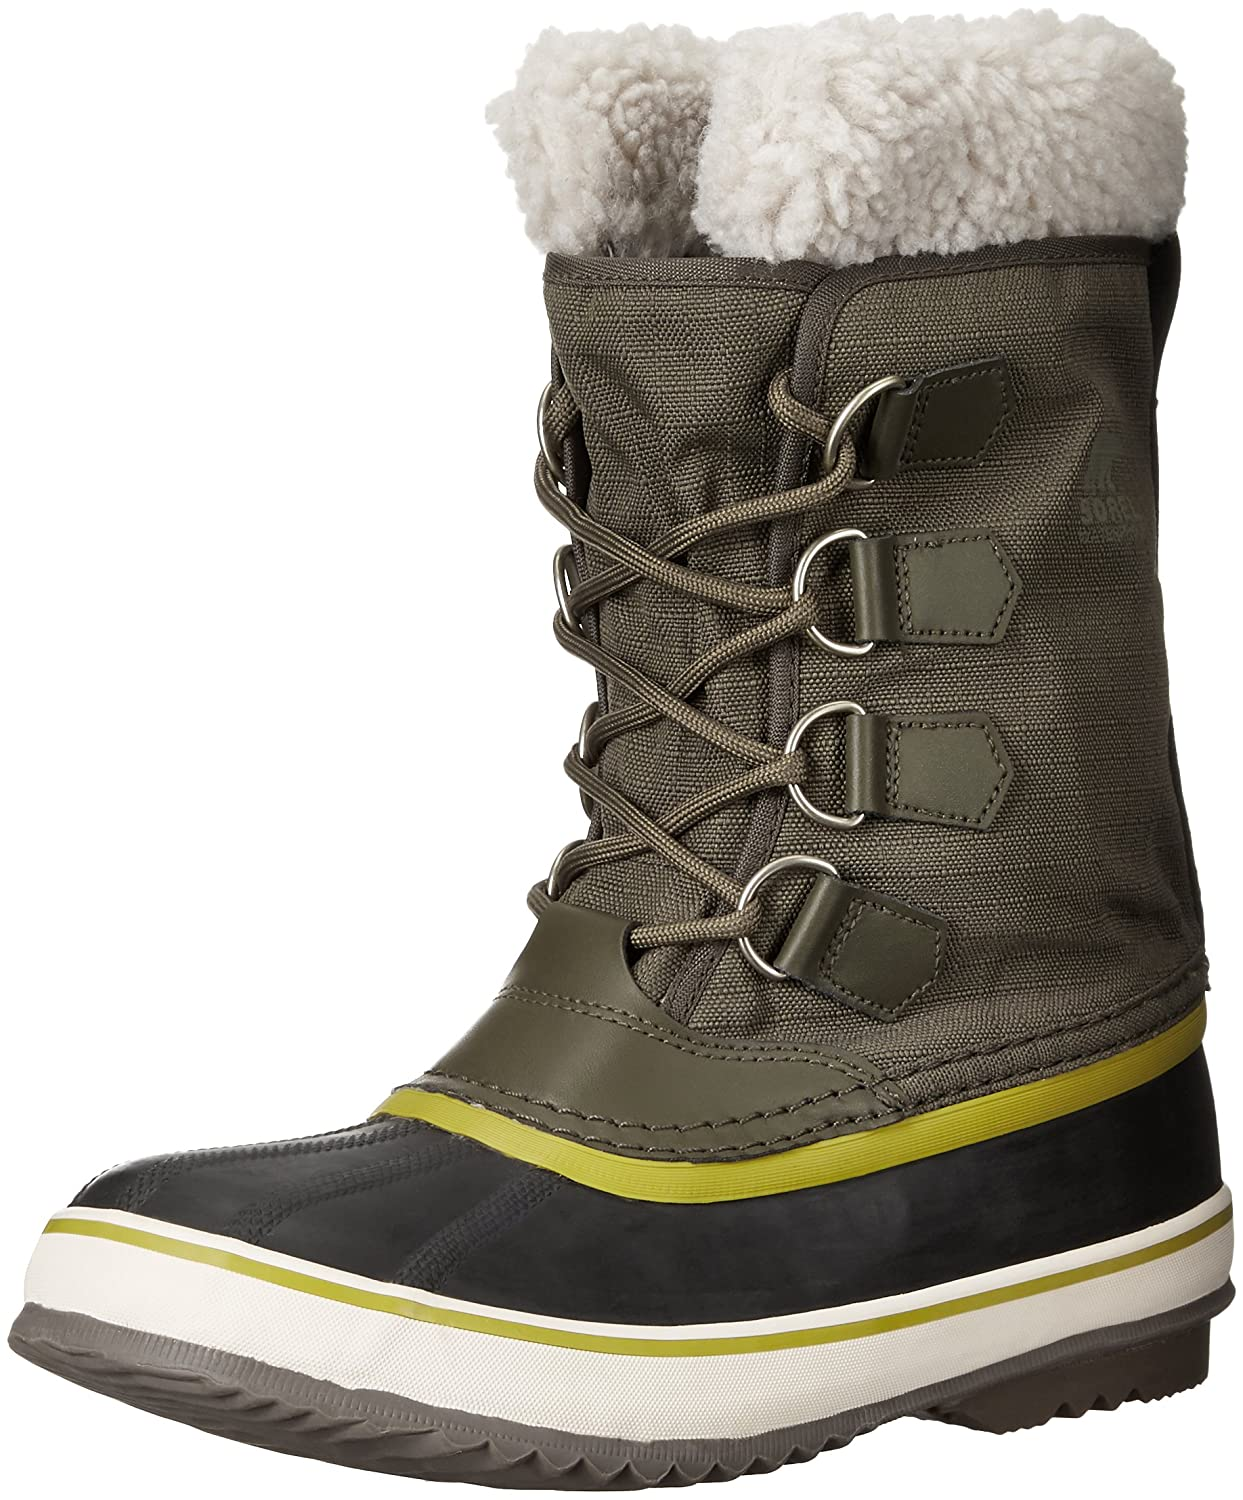 Sorel (Peatmoss Winter Carnival, Bottes de Neige Neige Femme Vert (Peatmoss de 214) 482110e - automaticcouplings.space